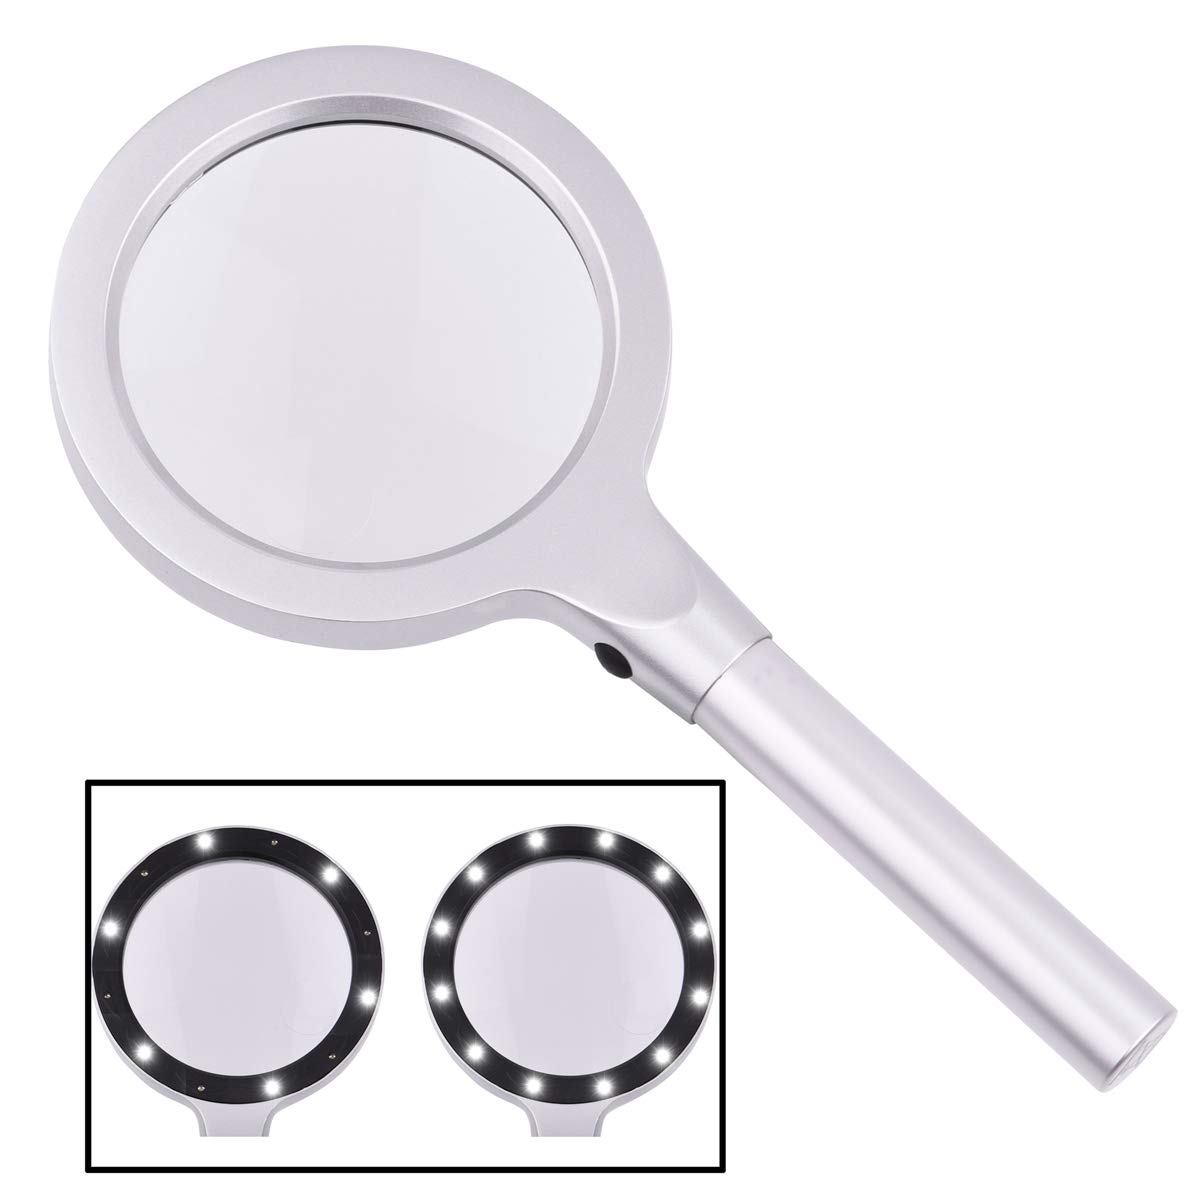 HeiyRC Magnifying Glass with LED Light,5X 10X Handheld Magnifier for Reading Books,Repair,Coins,RC Hobbies,Jewelry Loupe